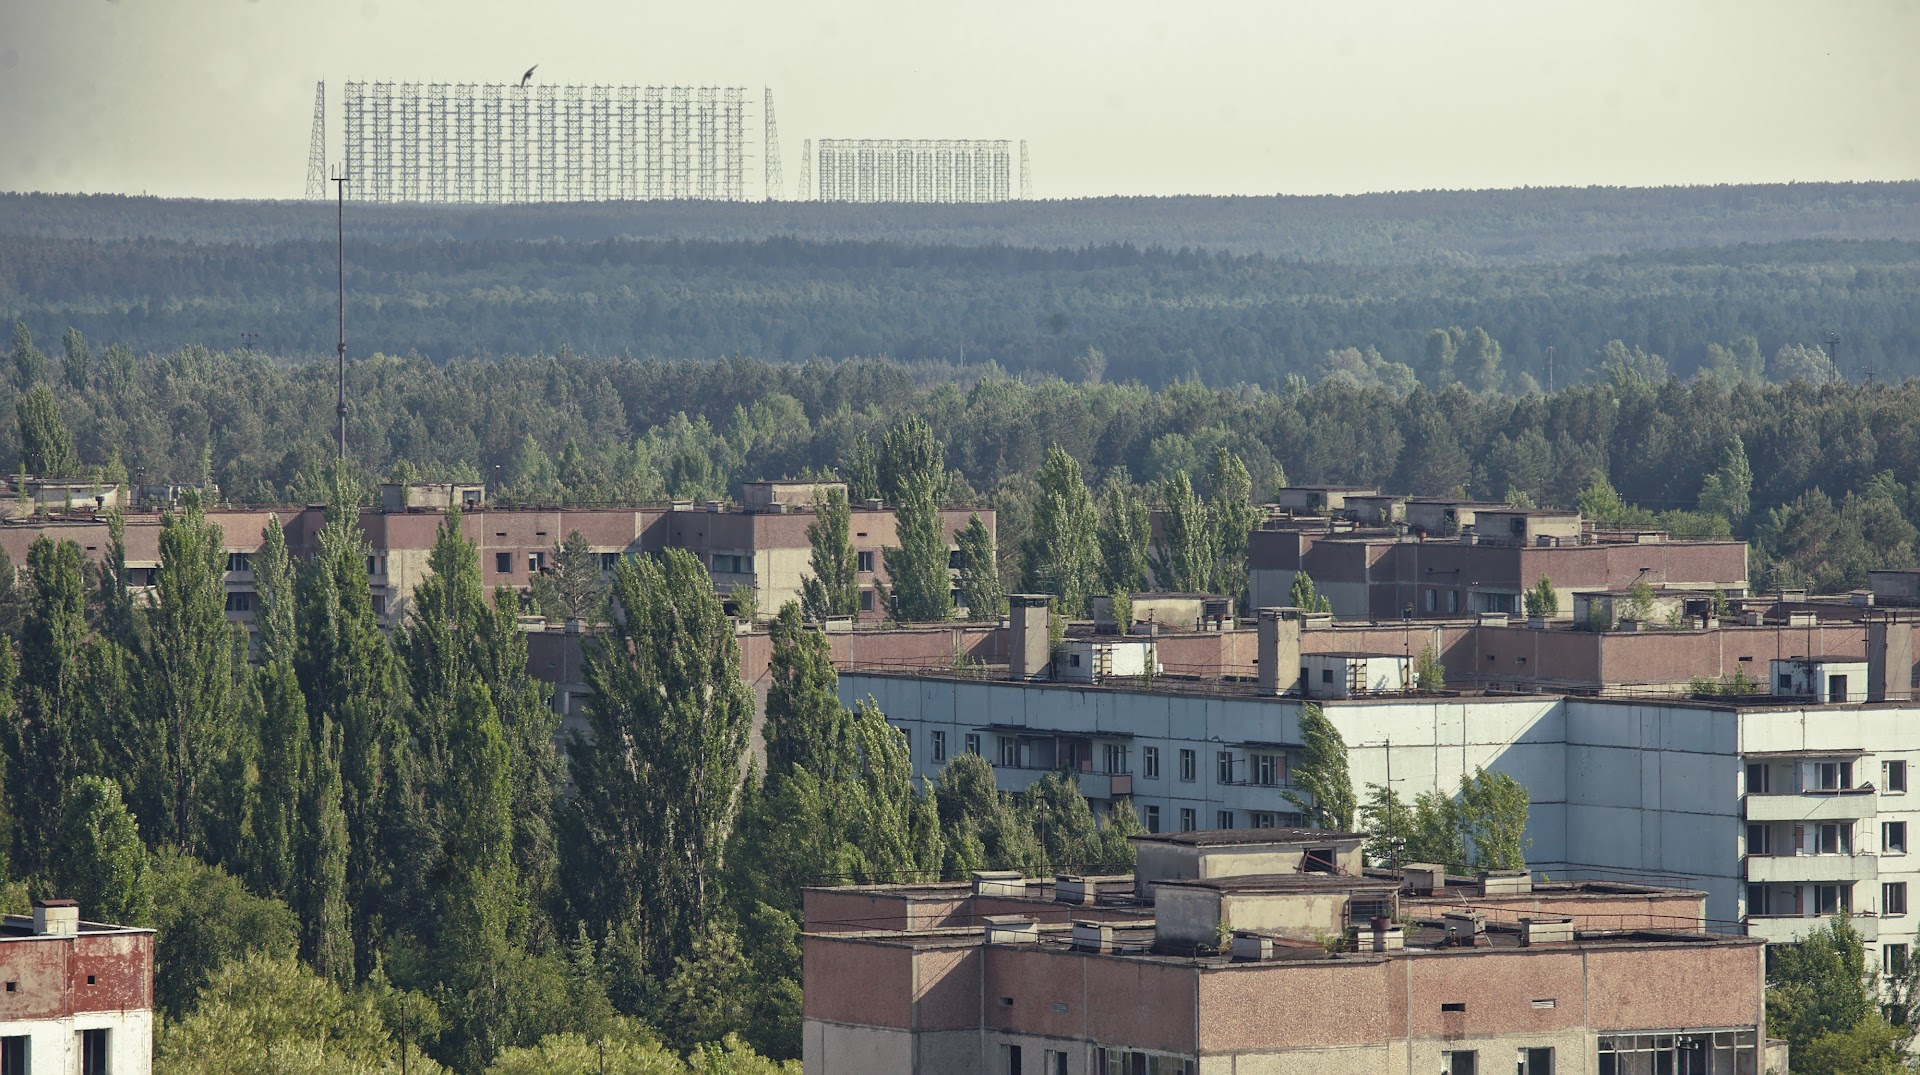 Duga-2 antennas are visible from the city